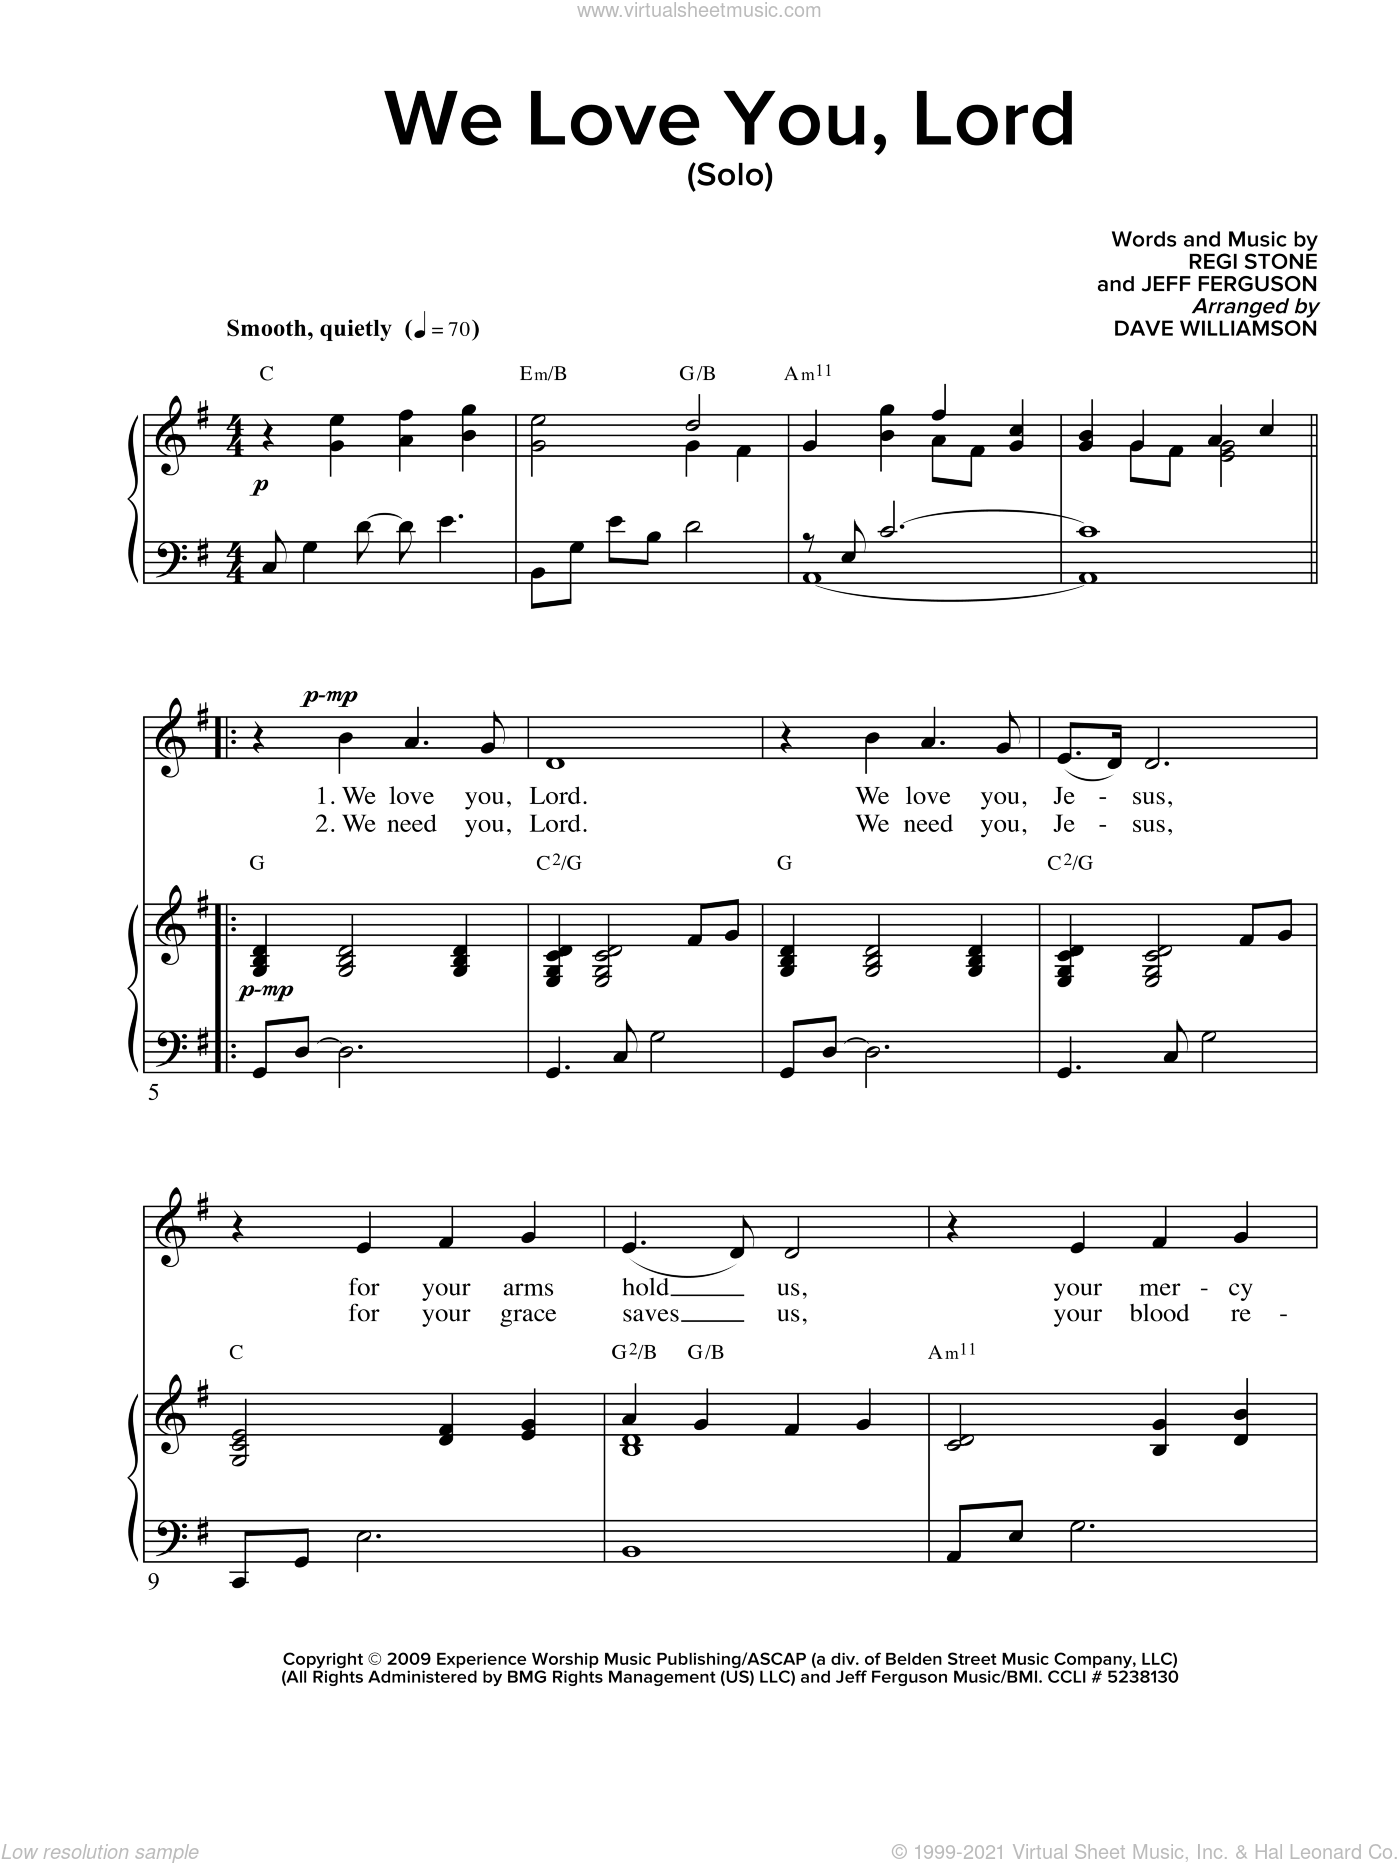 We Love You Lord sheet music for voice and piano by Jeffrey Ferguson and Regi Stone. Score Image Preview.